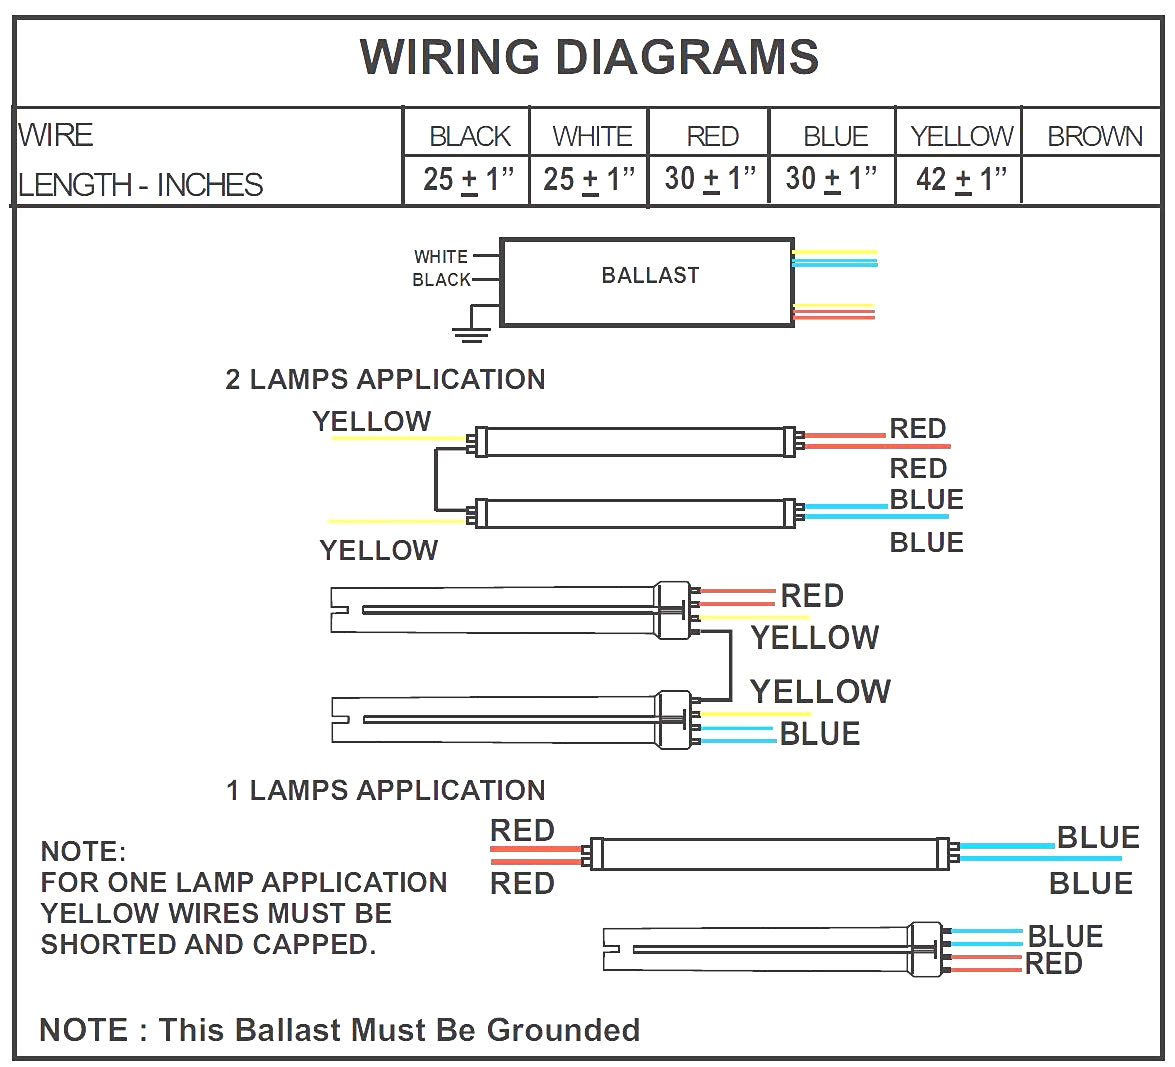 Fulham Workhorse Wh5 120 L Wiring Diagram Wiring Diagram for T5 Conversion Wiring Diagram